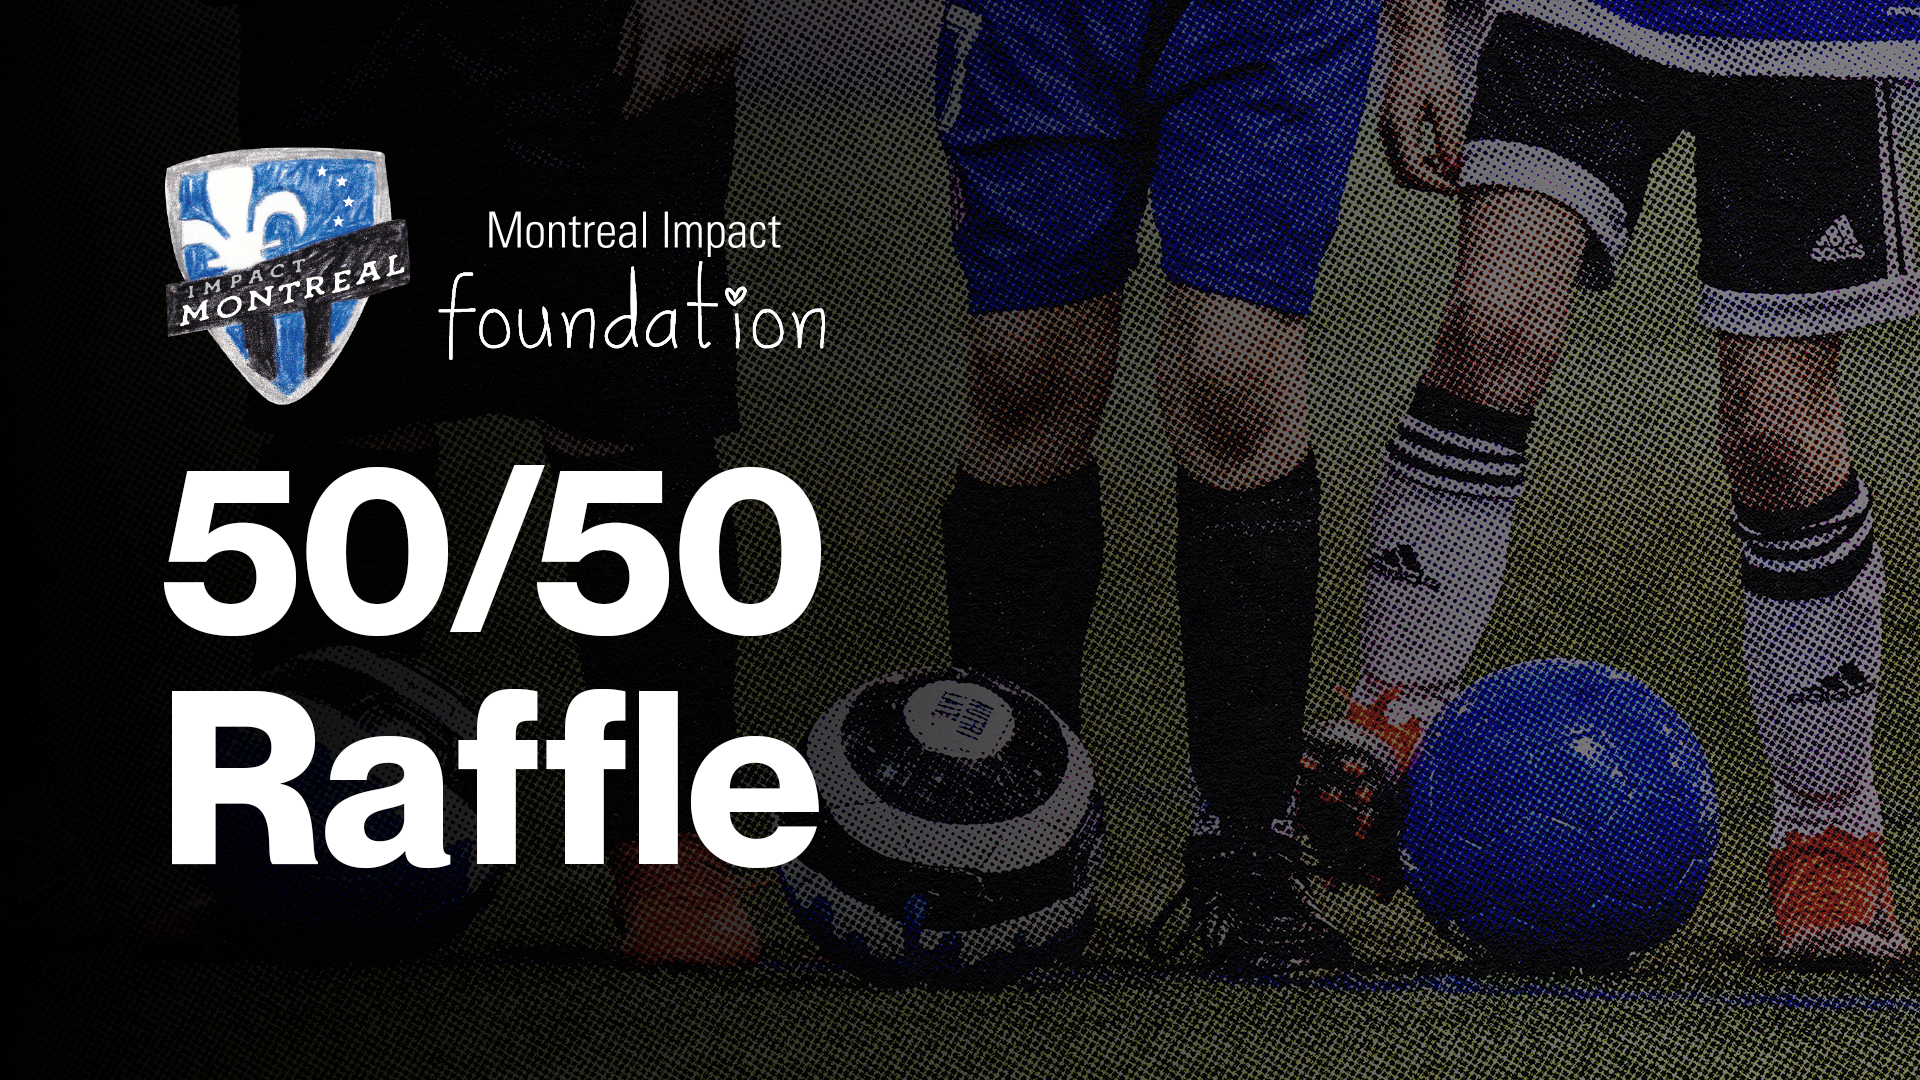 The Foundation is back with its 50/50 raffle during CF Montréal home games